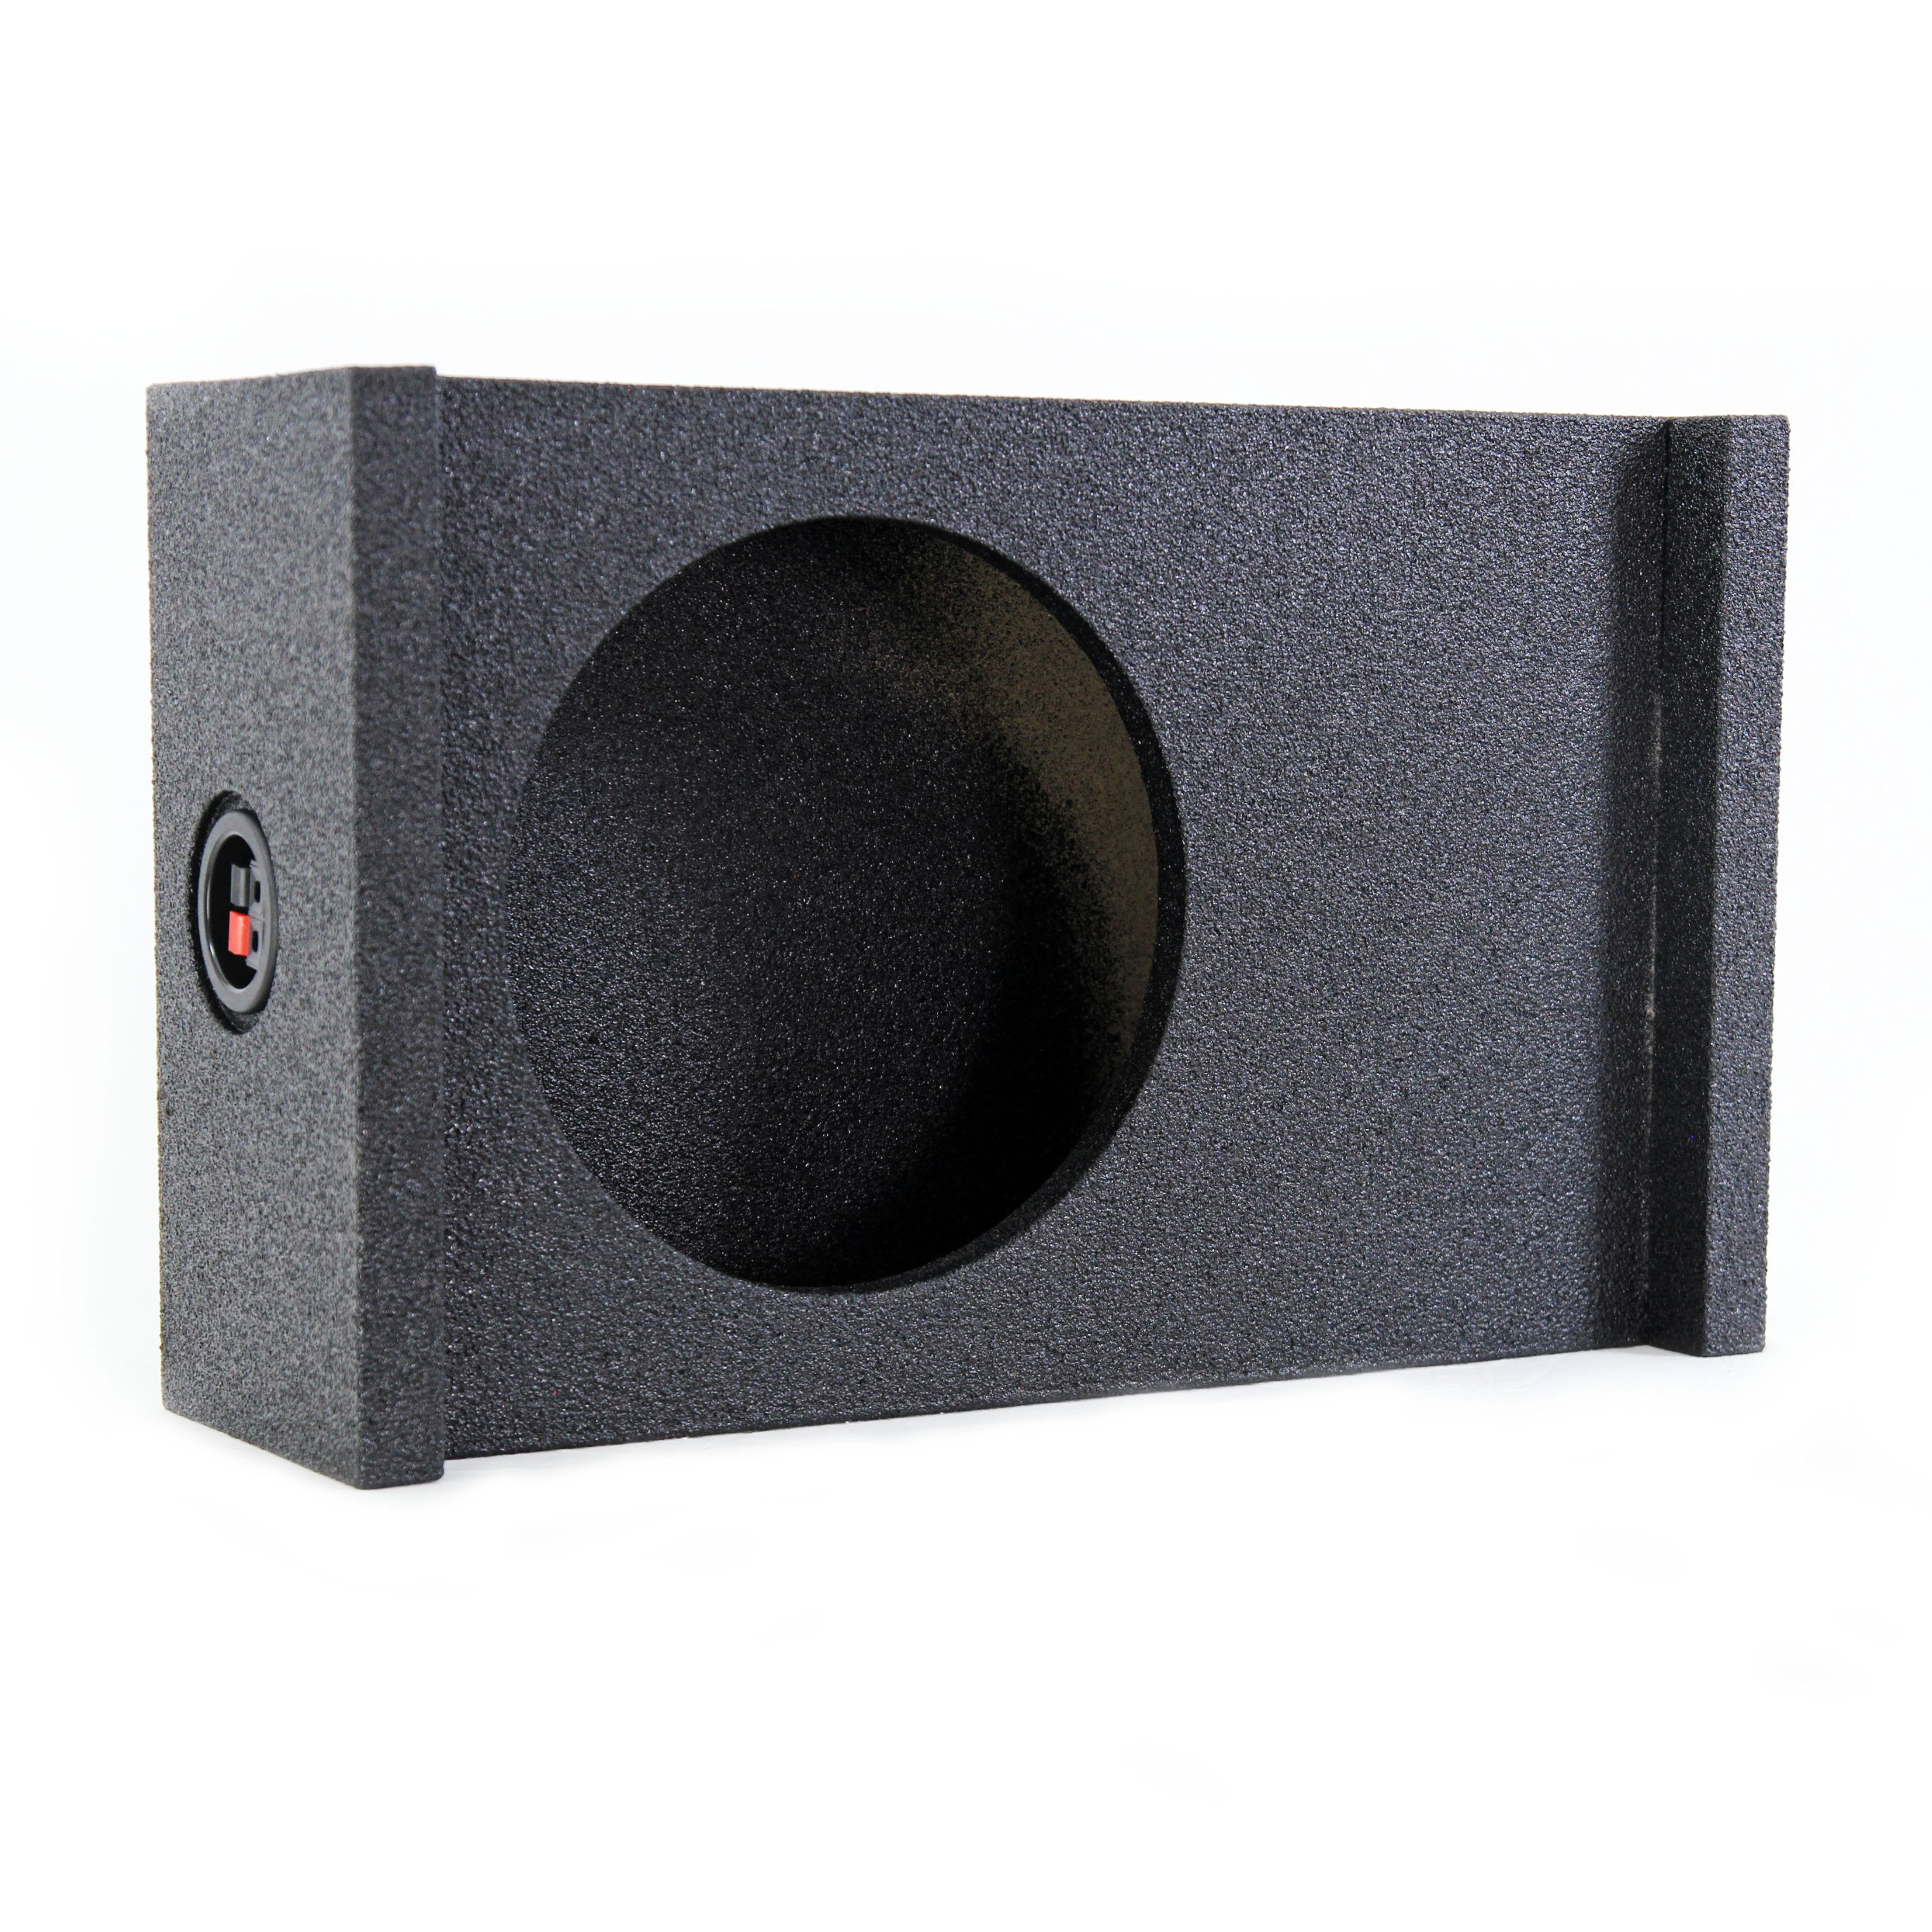 Q-Power Single 12-Inch Universal Downfire/Behind Seat Sub Box | QBSHALLOW12 DF